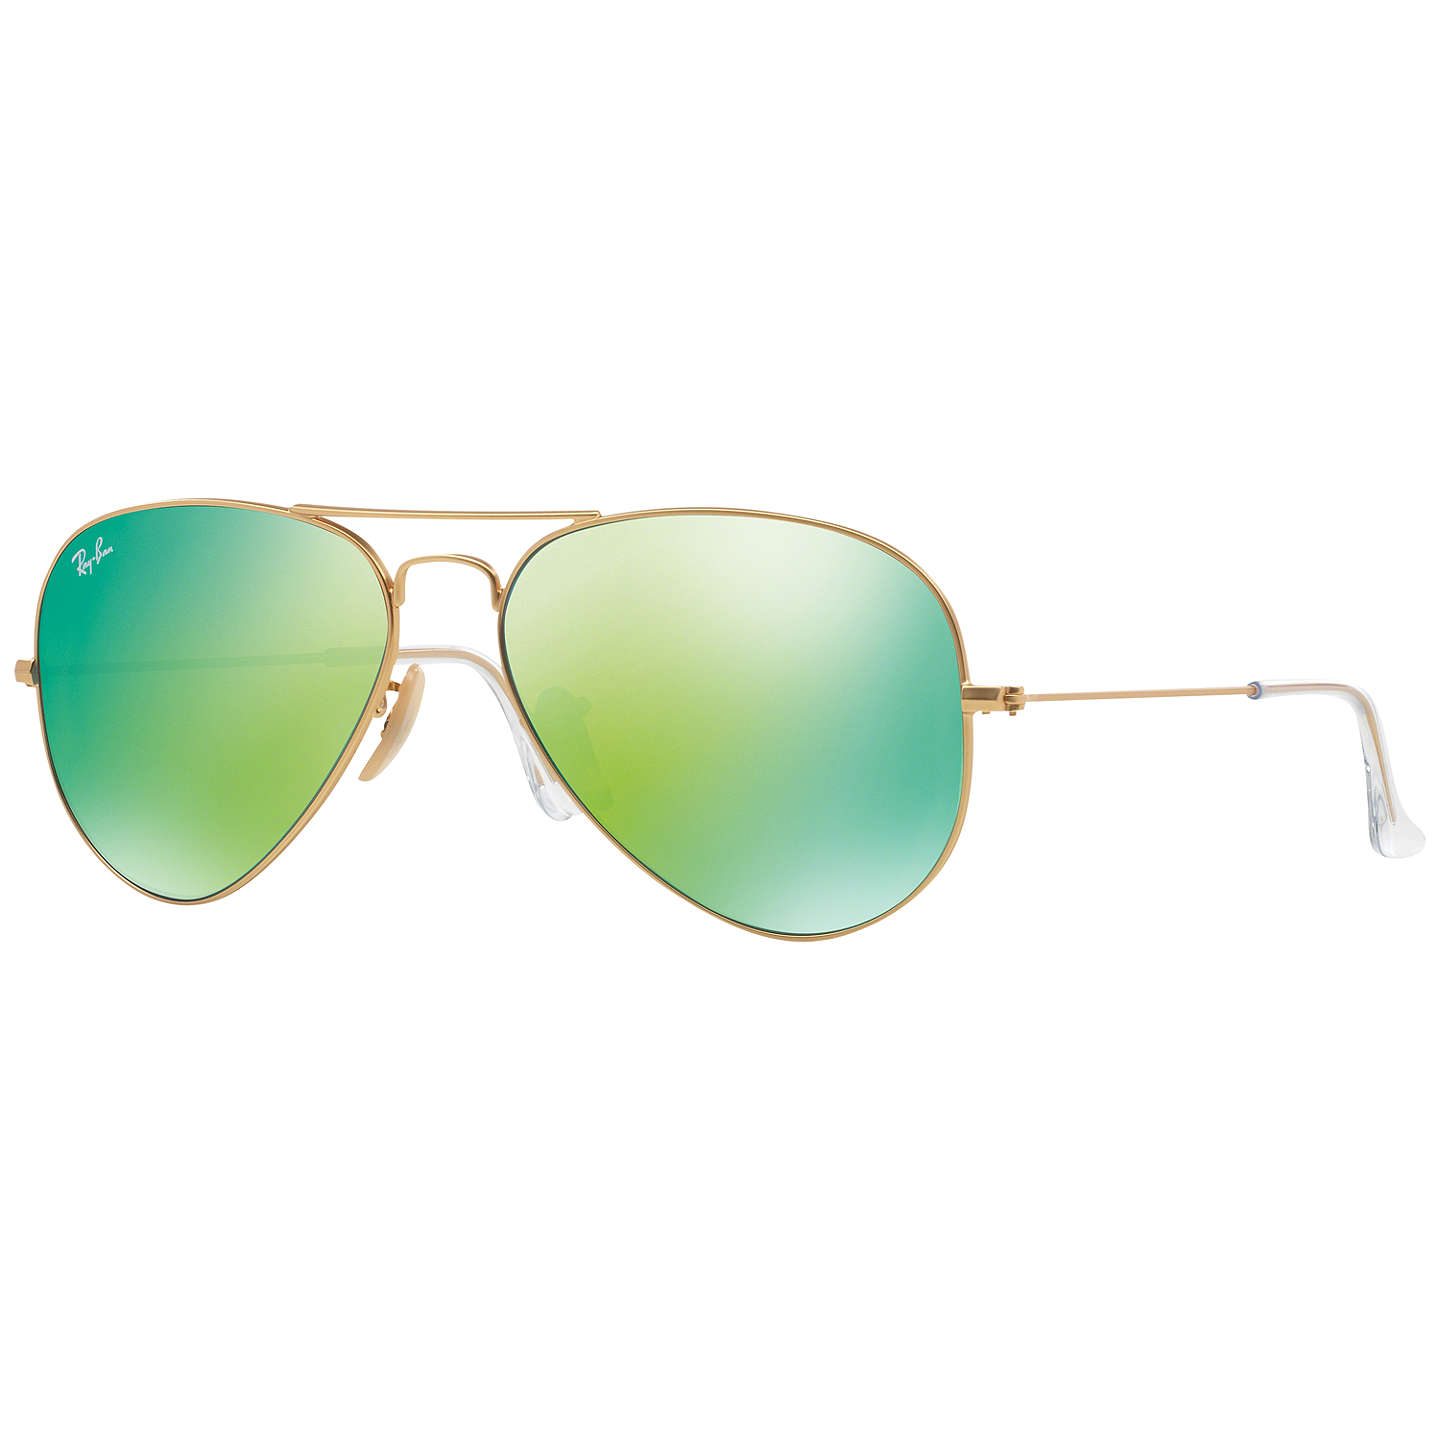 BuyRay-Ban RB3025 Aviator Sunglasses, Green Online at johnlewis.com